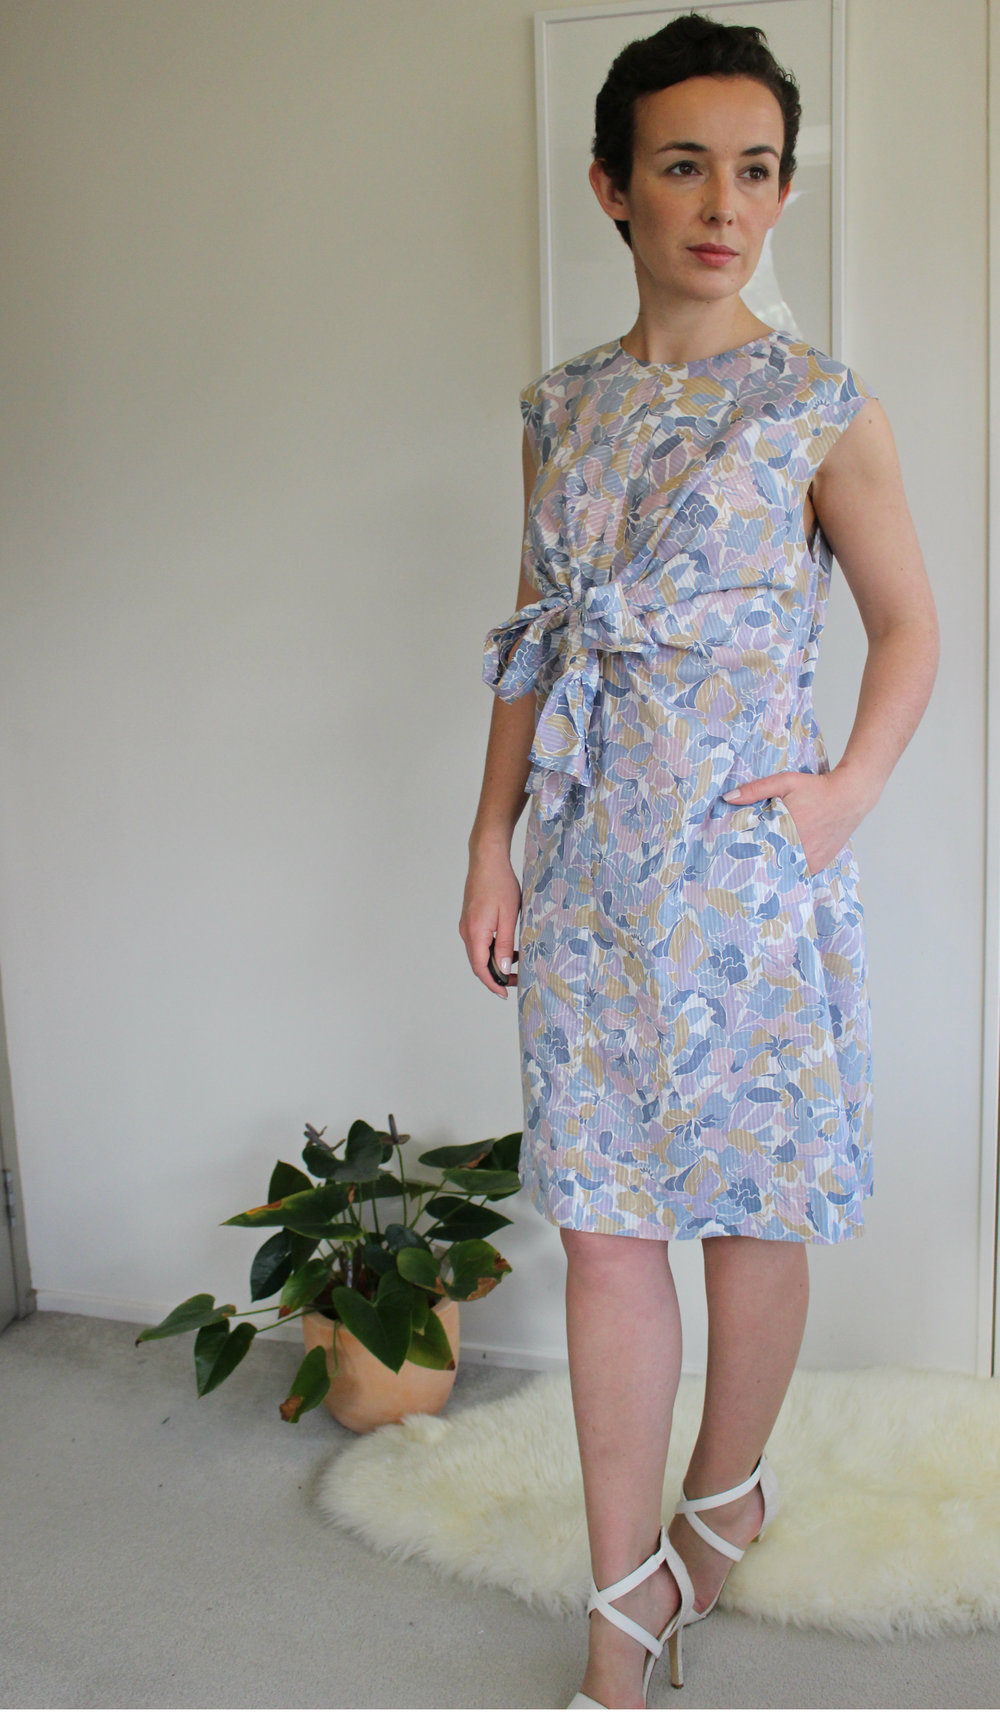 Dress: World, via Salvation Army